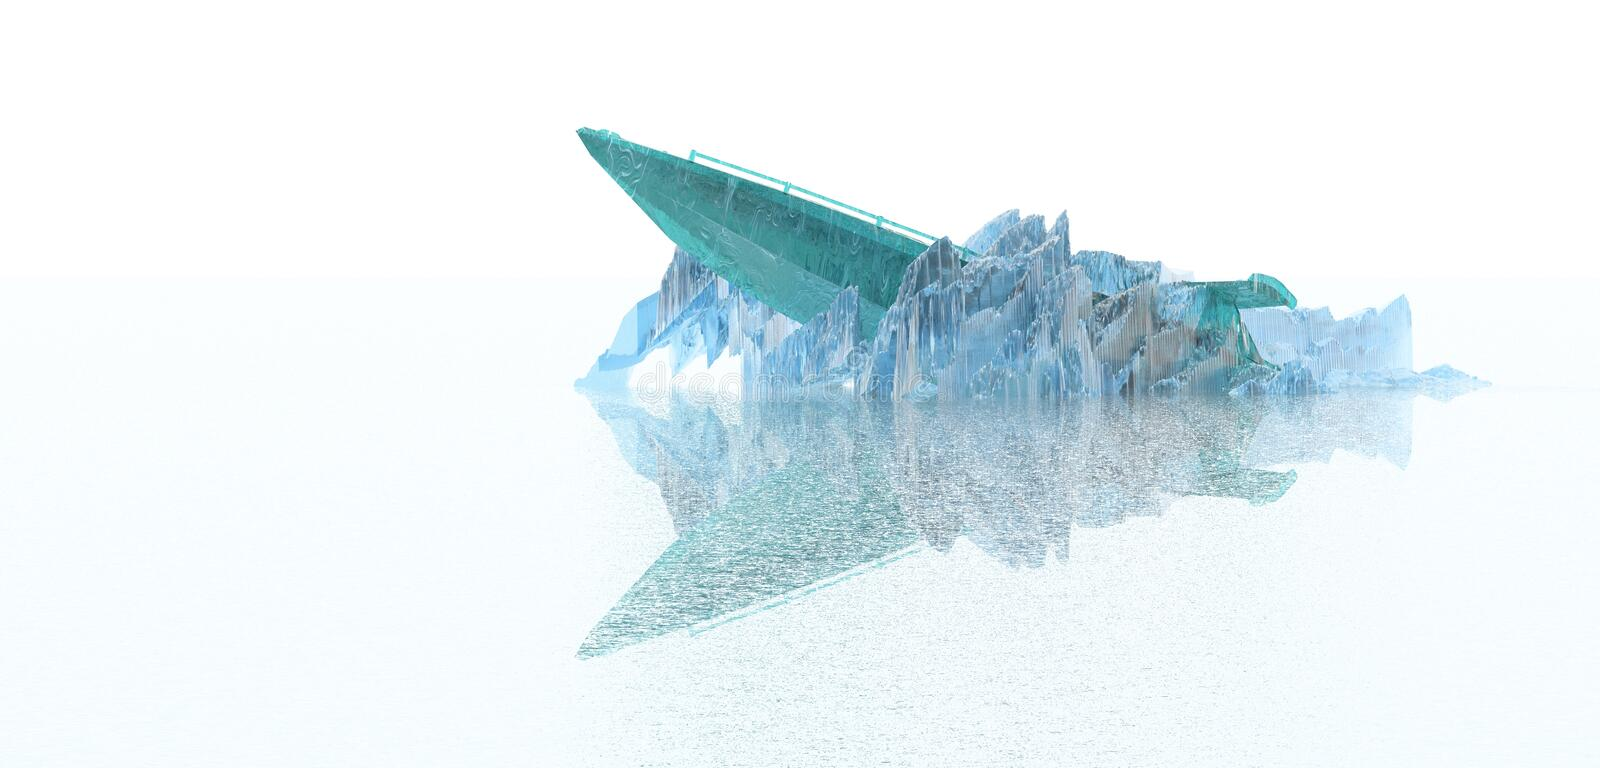 Boat trapped in ice royalty free illustration